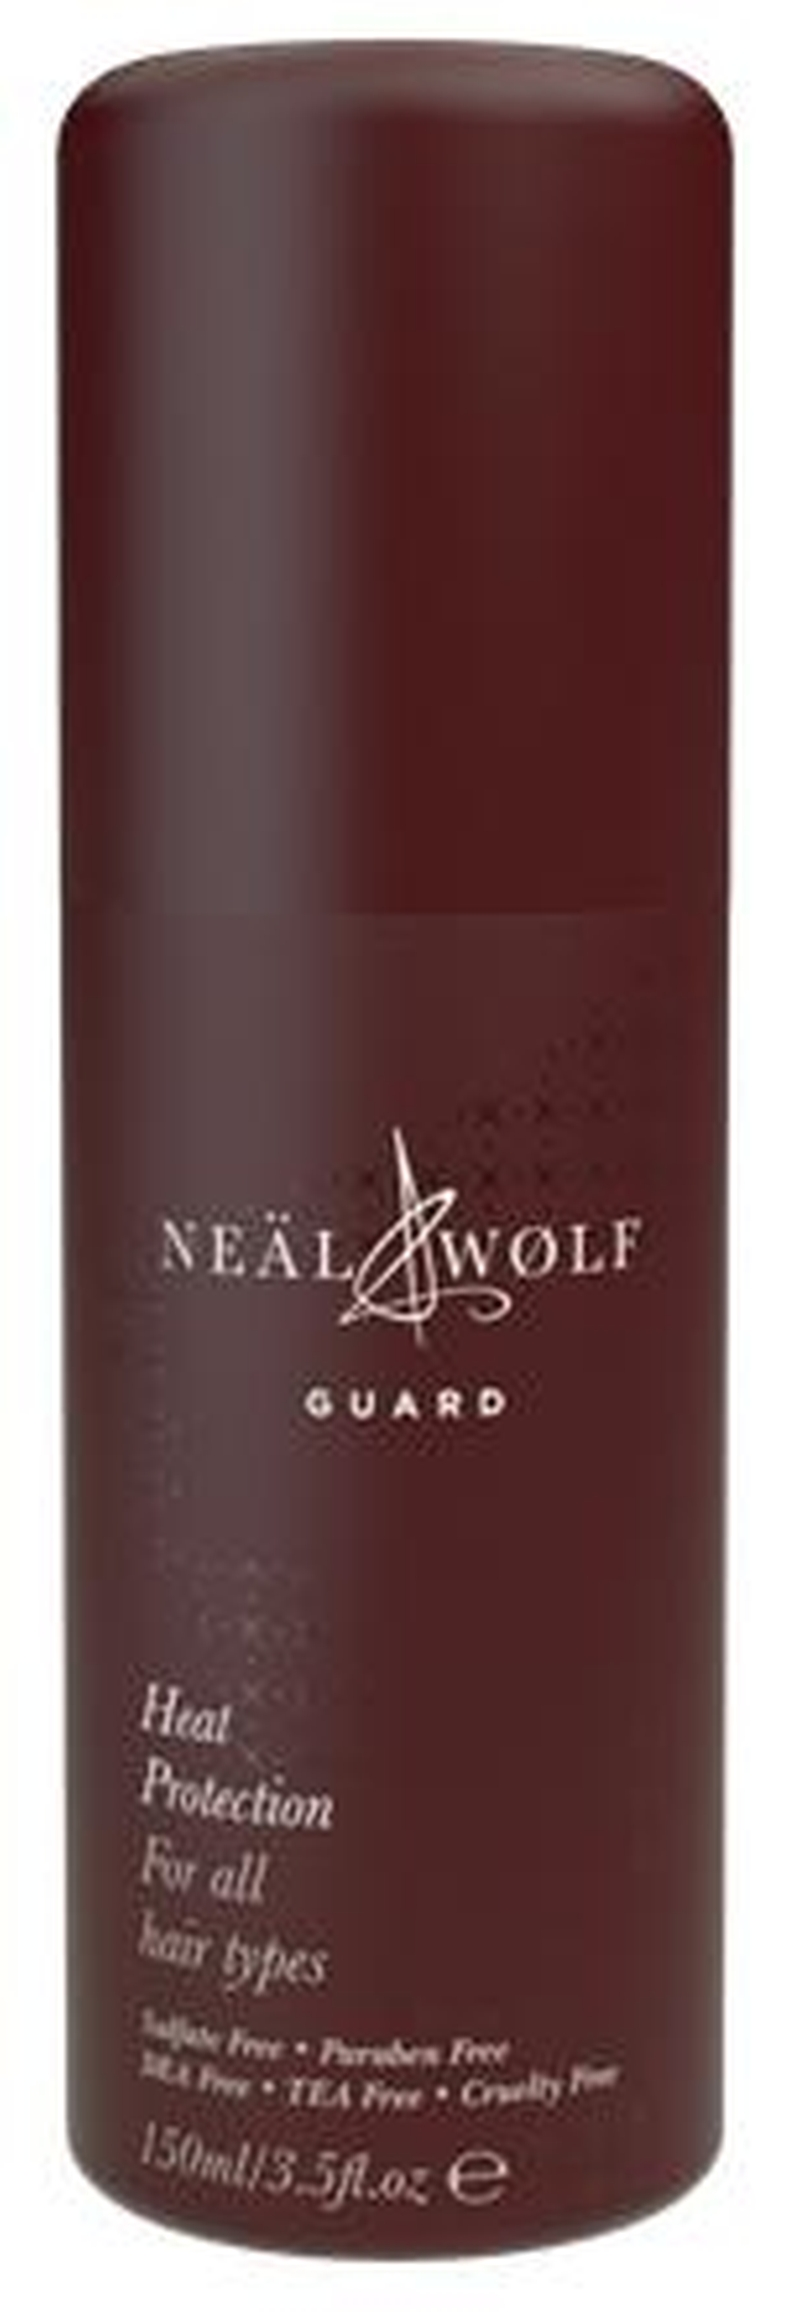 Neal and Wolf Guard Heat Protection 150ml